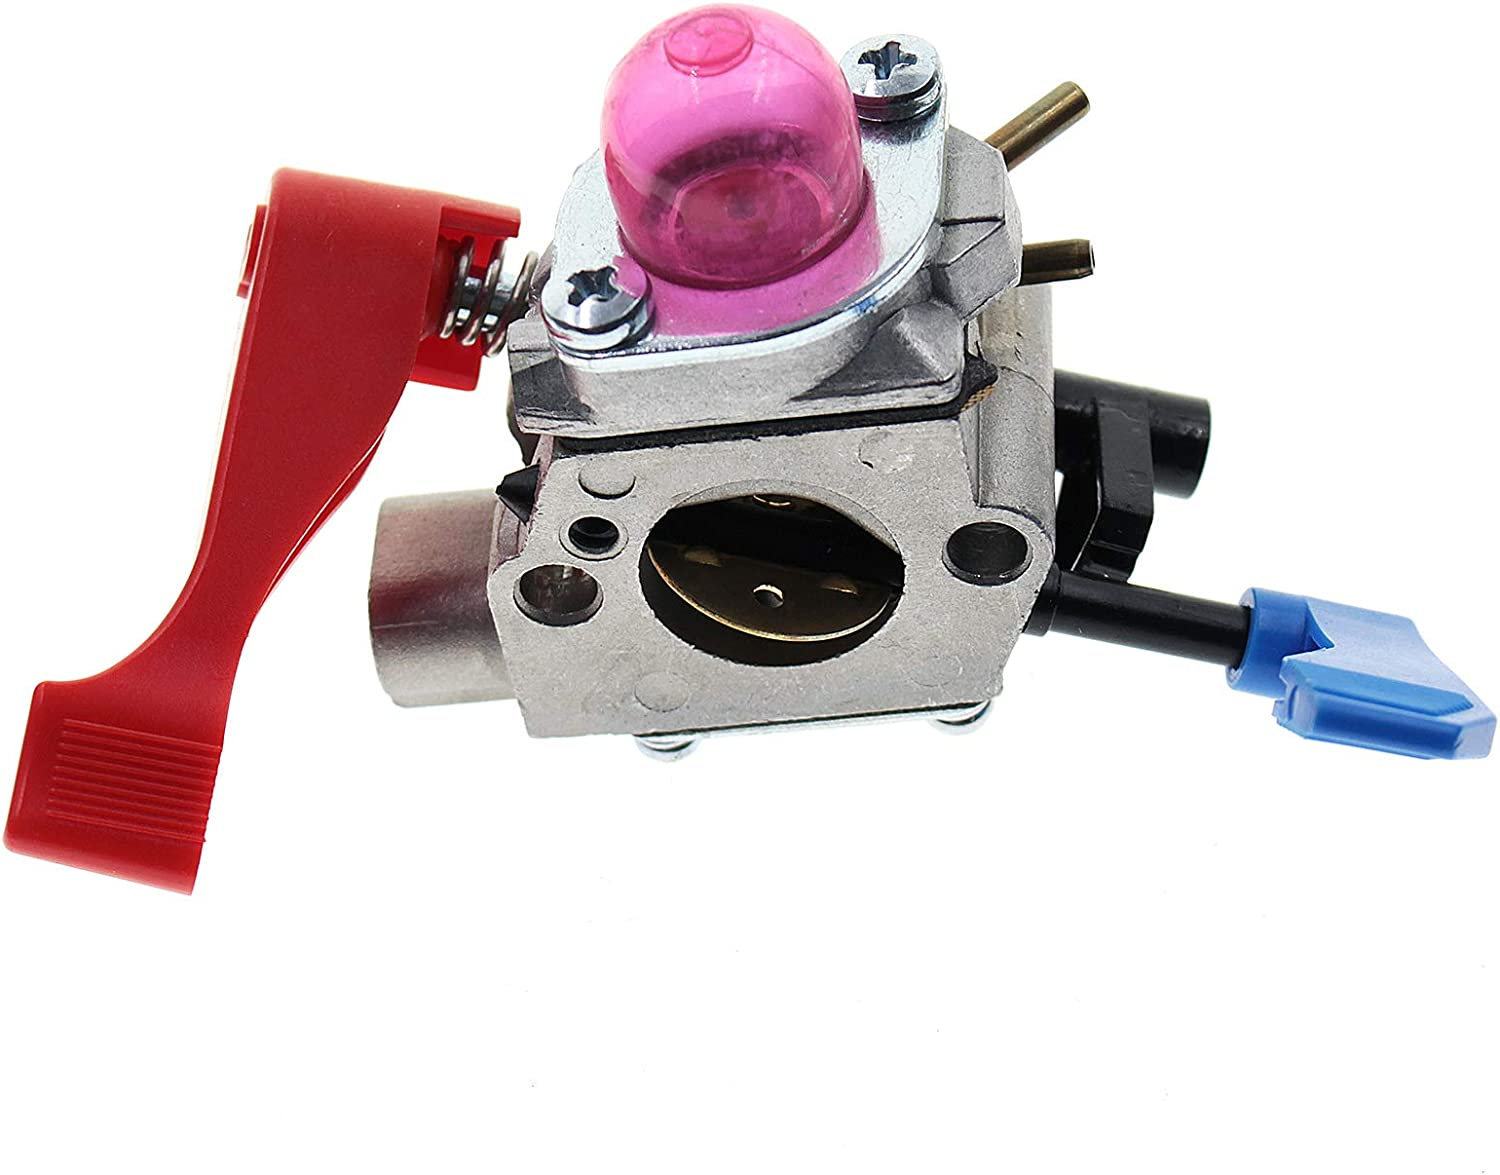 AUTOKAY WT-784 Carburetor with Air Filter Tune Up Kit for Poulan Weed Eater Craftsman 530071465 530071775 B1750 B1750LE BV1650 BV1650LE BV1800 BV1800LE BV1850 BV1850LE BV200LE BV2000 Leaf Blower